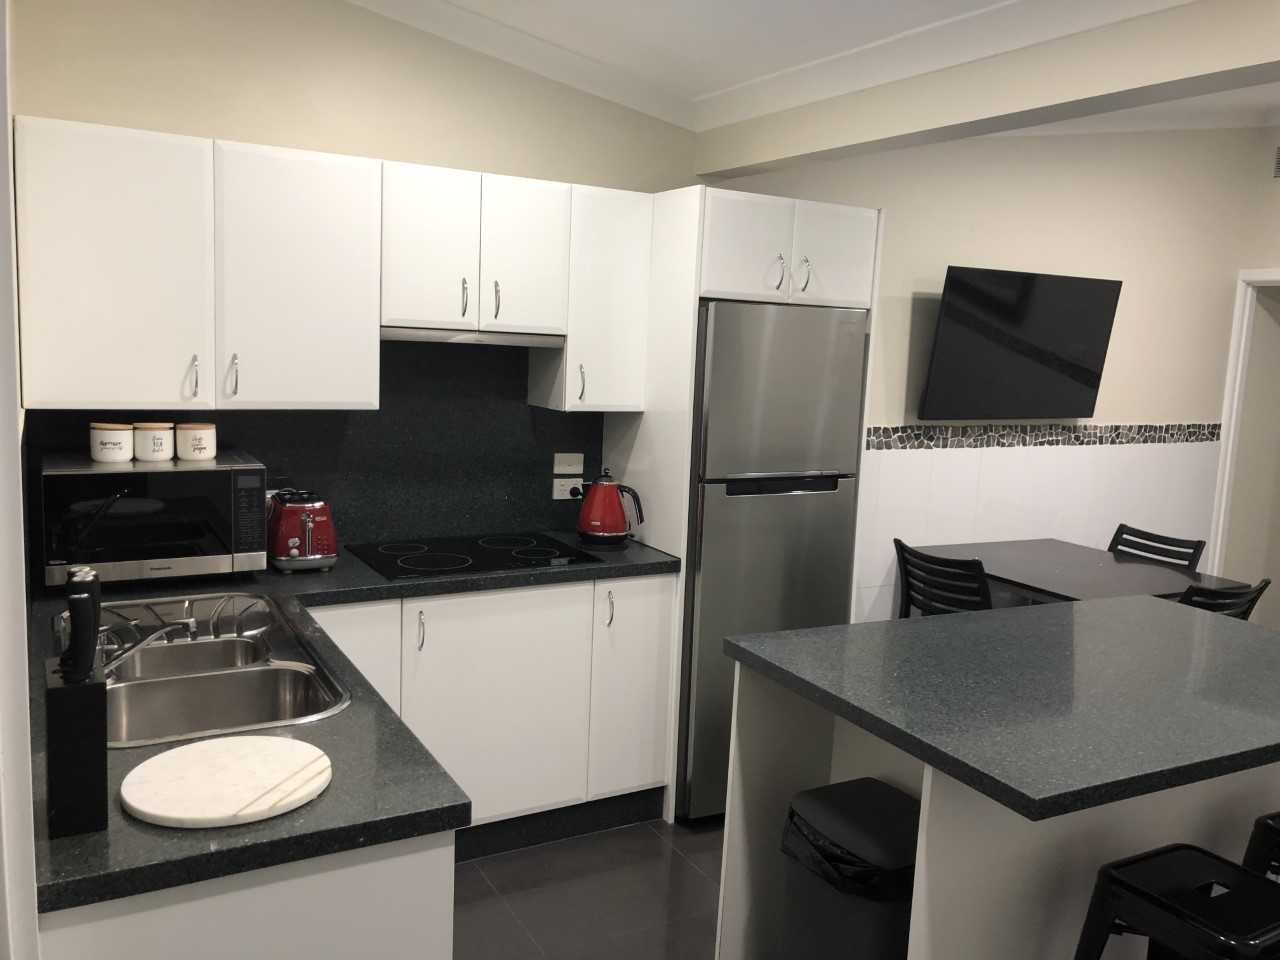 Callaghan Cottages - https://www.newcastleapartments.com.au/wp-content/uploads/2020/02/kitchen.jpg